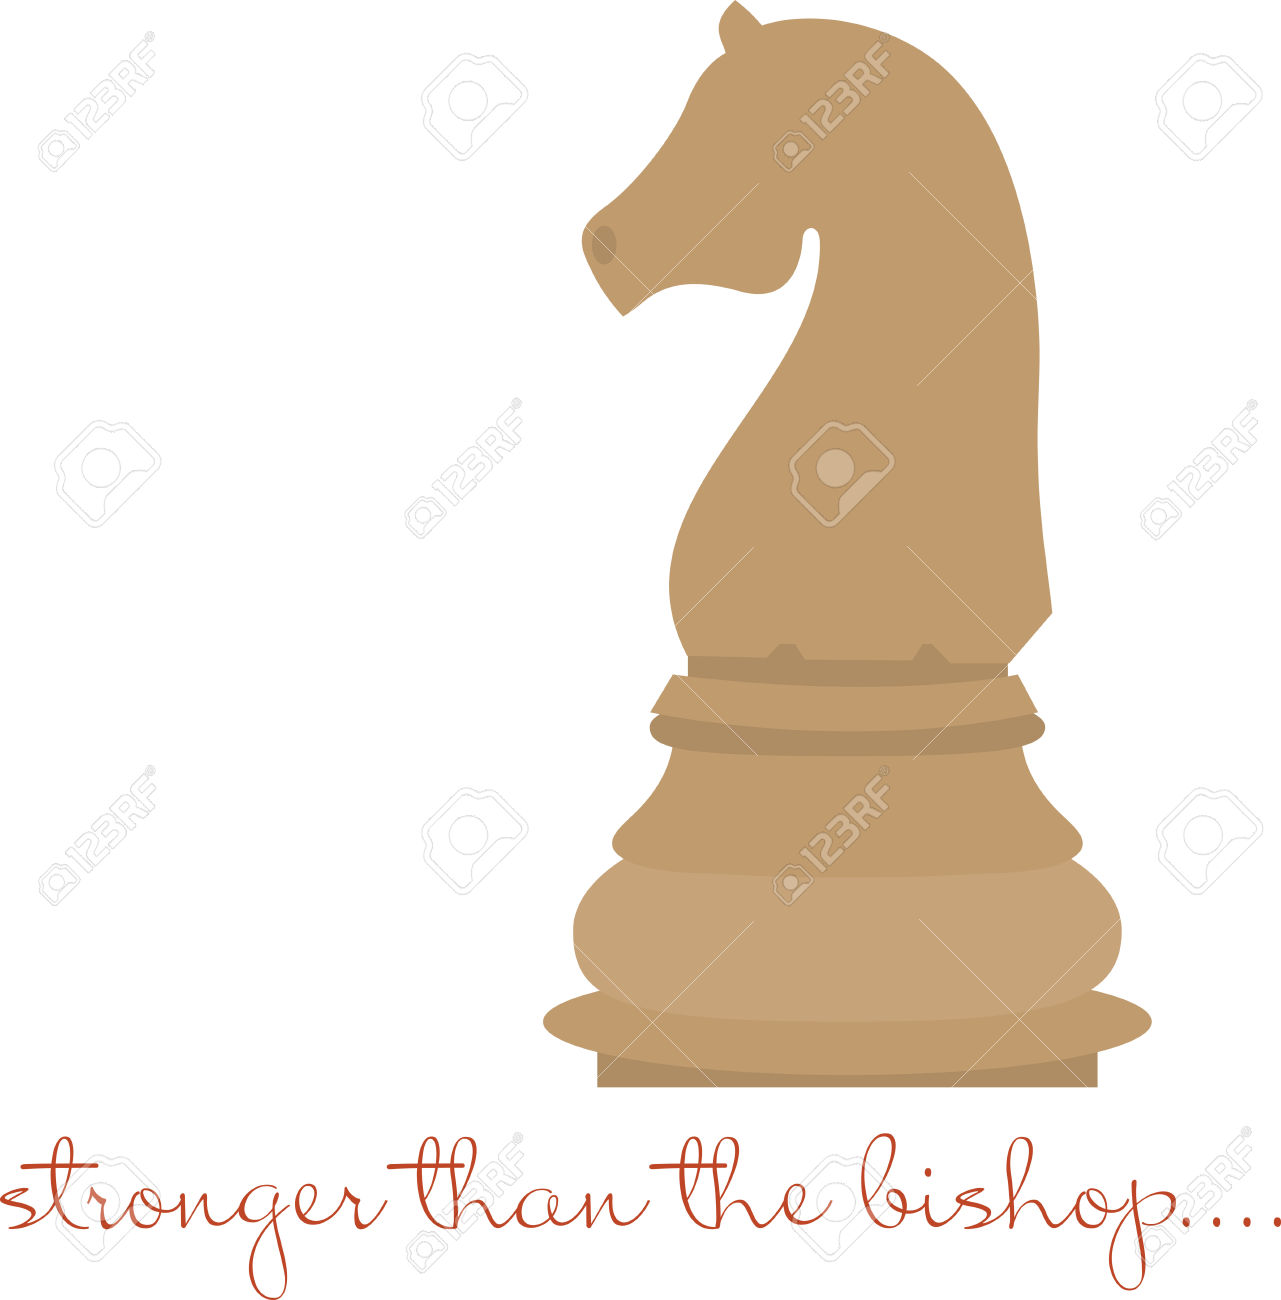 Use This Knight Piece For A Chess Master. Royalty Free Cliparts.